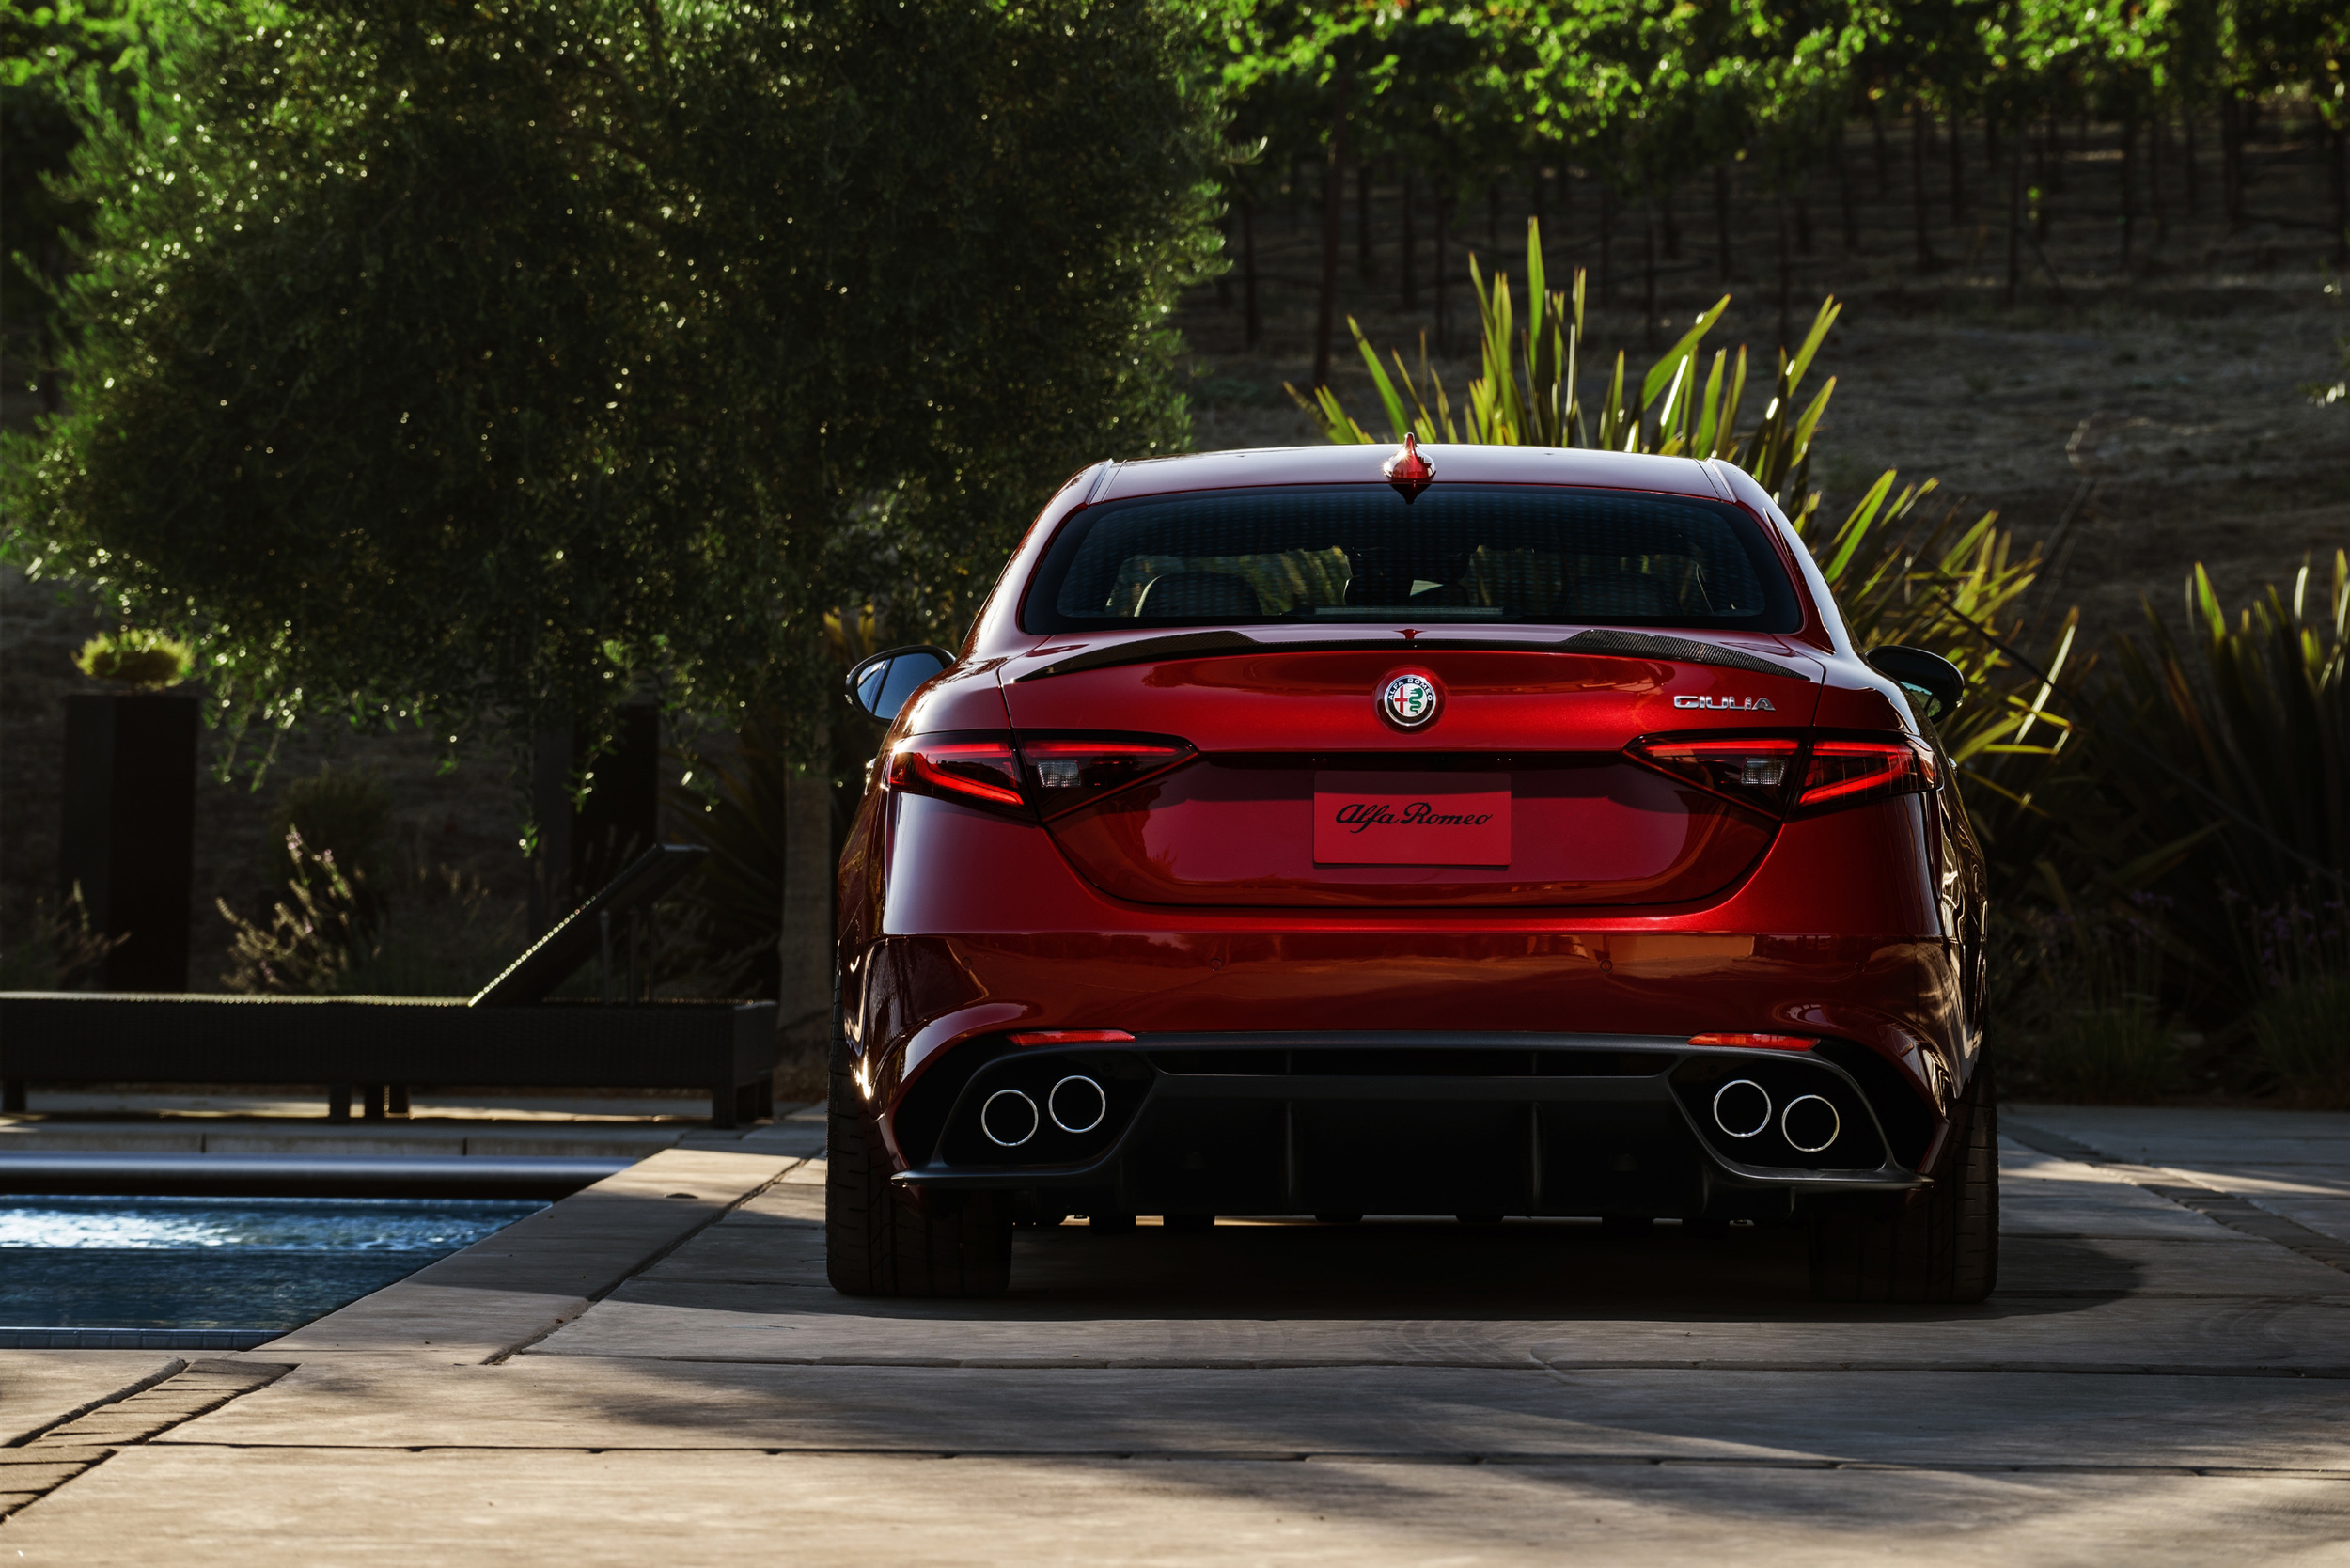 Alfa Romeo Giulia Customers Asked for Exhaust Upgrade and